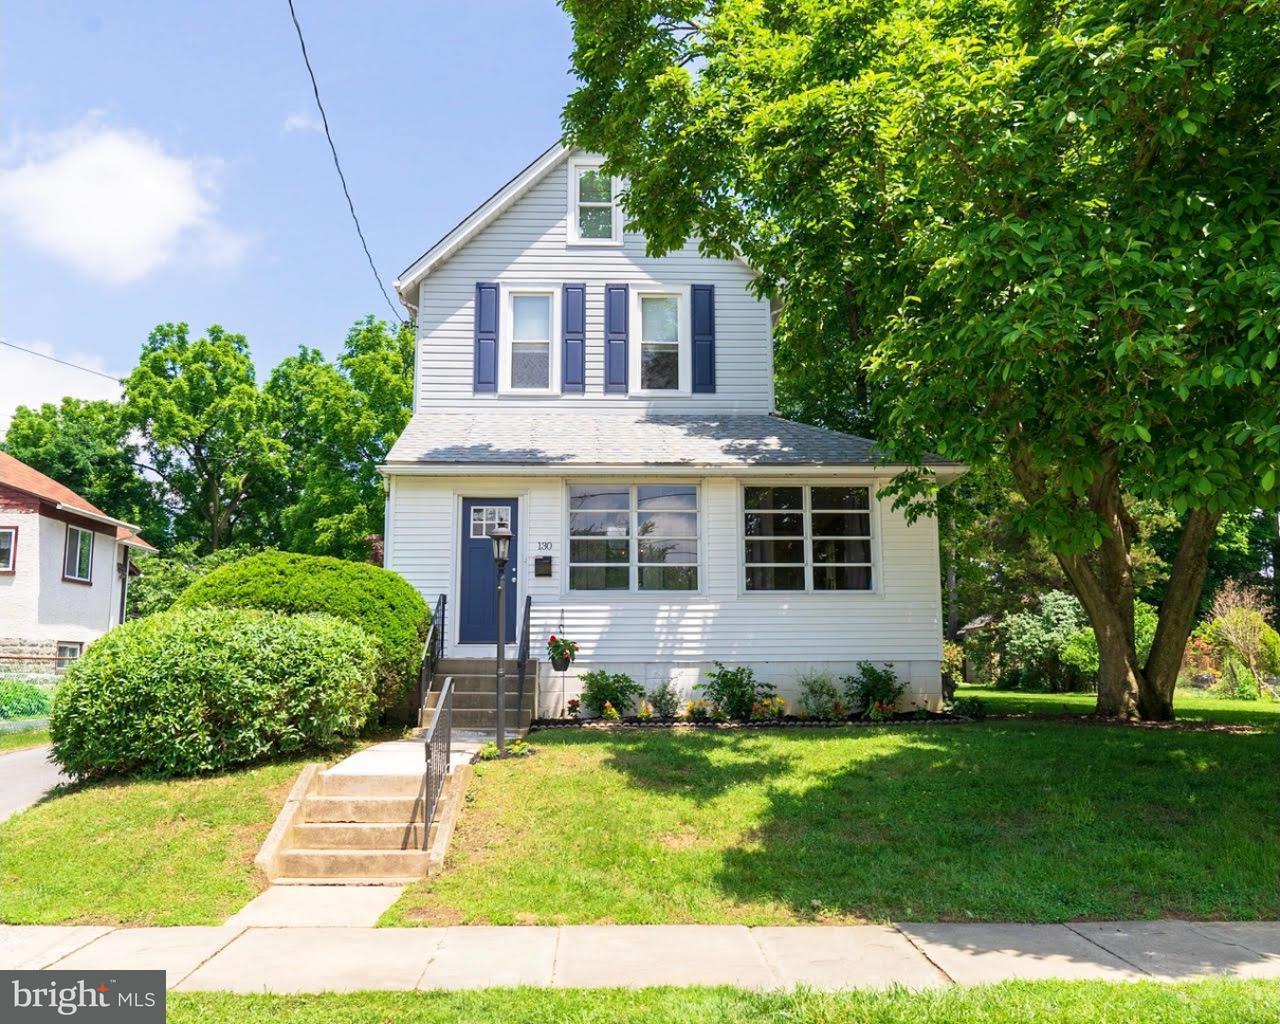 130 RUTLEDGE AVE, RUTLEDGE - Listed at $2,750,